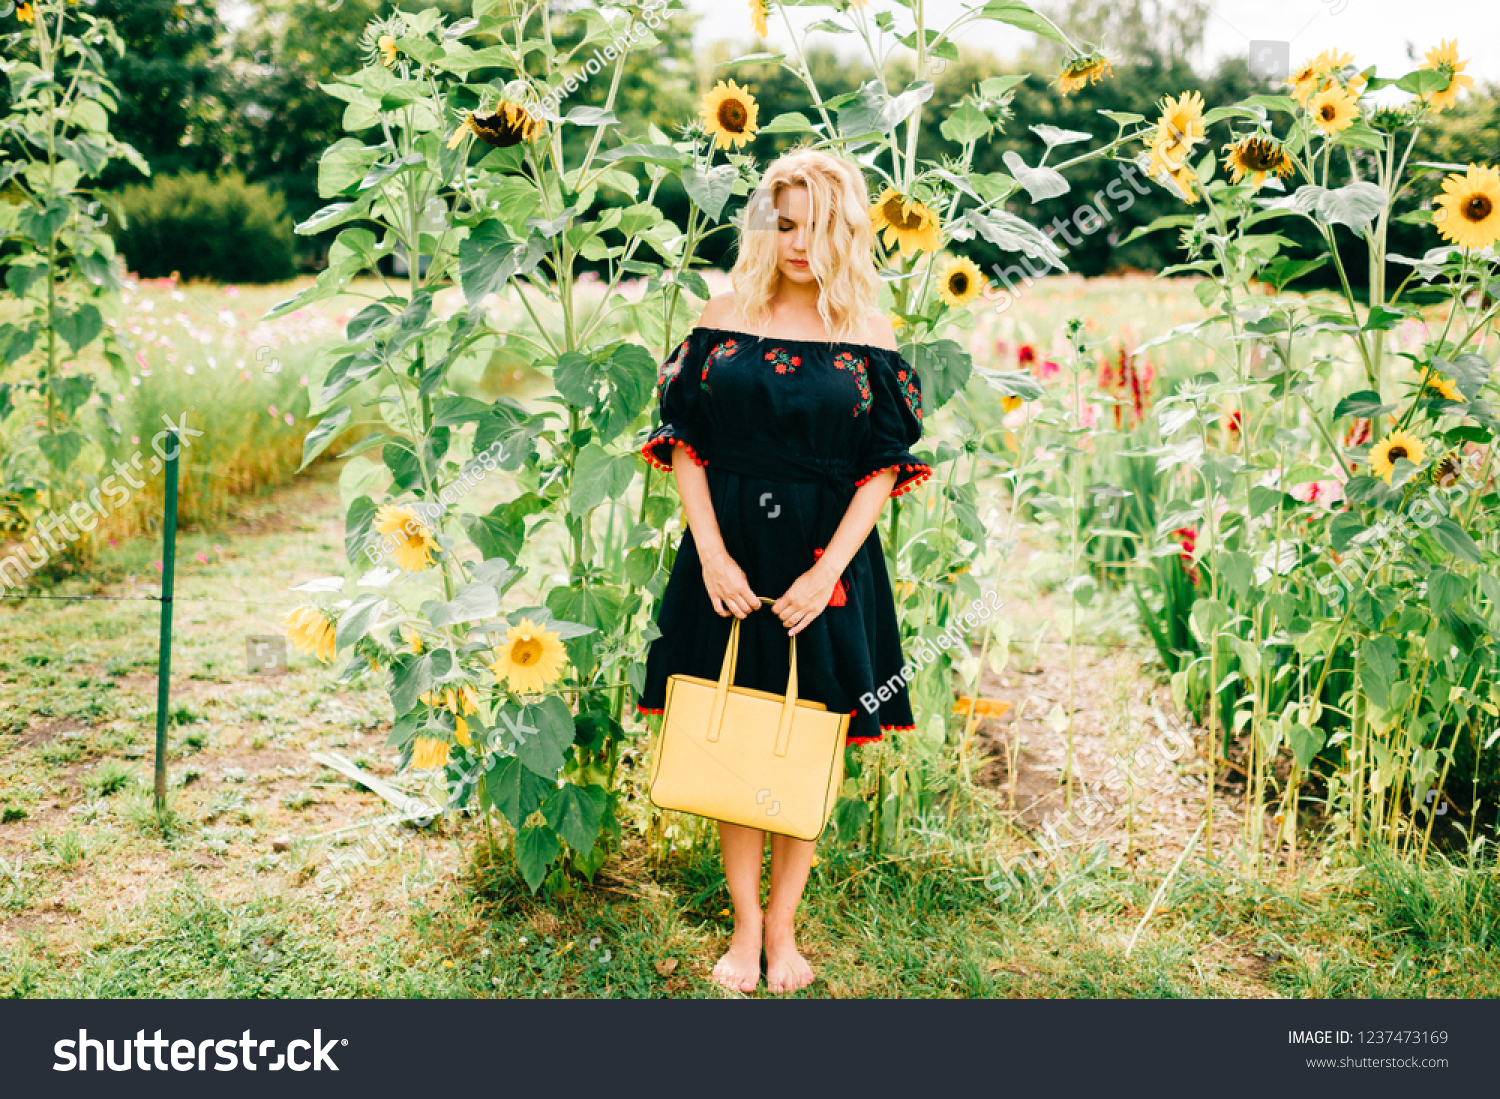 stock photo lifestyle portrait od unusual odd beautiful blonde girl in black embroidery with ornament holding